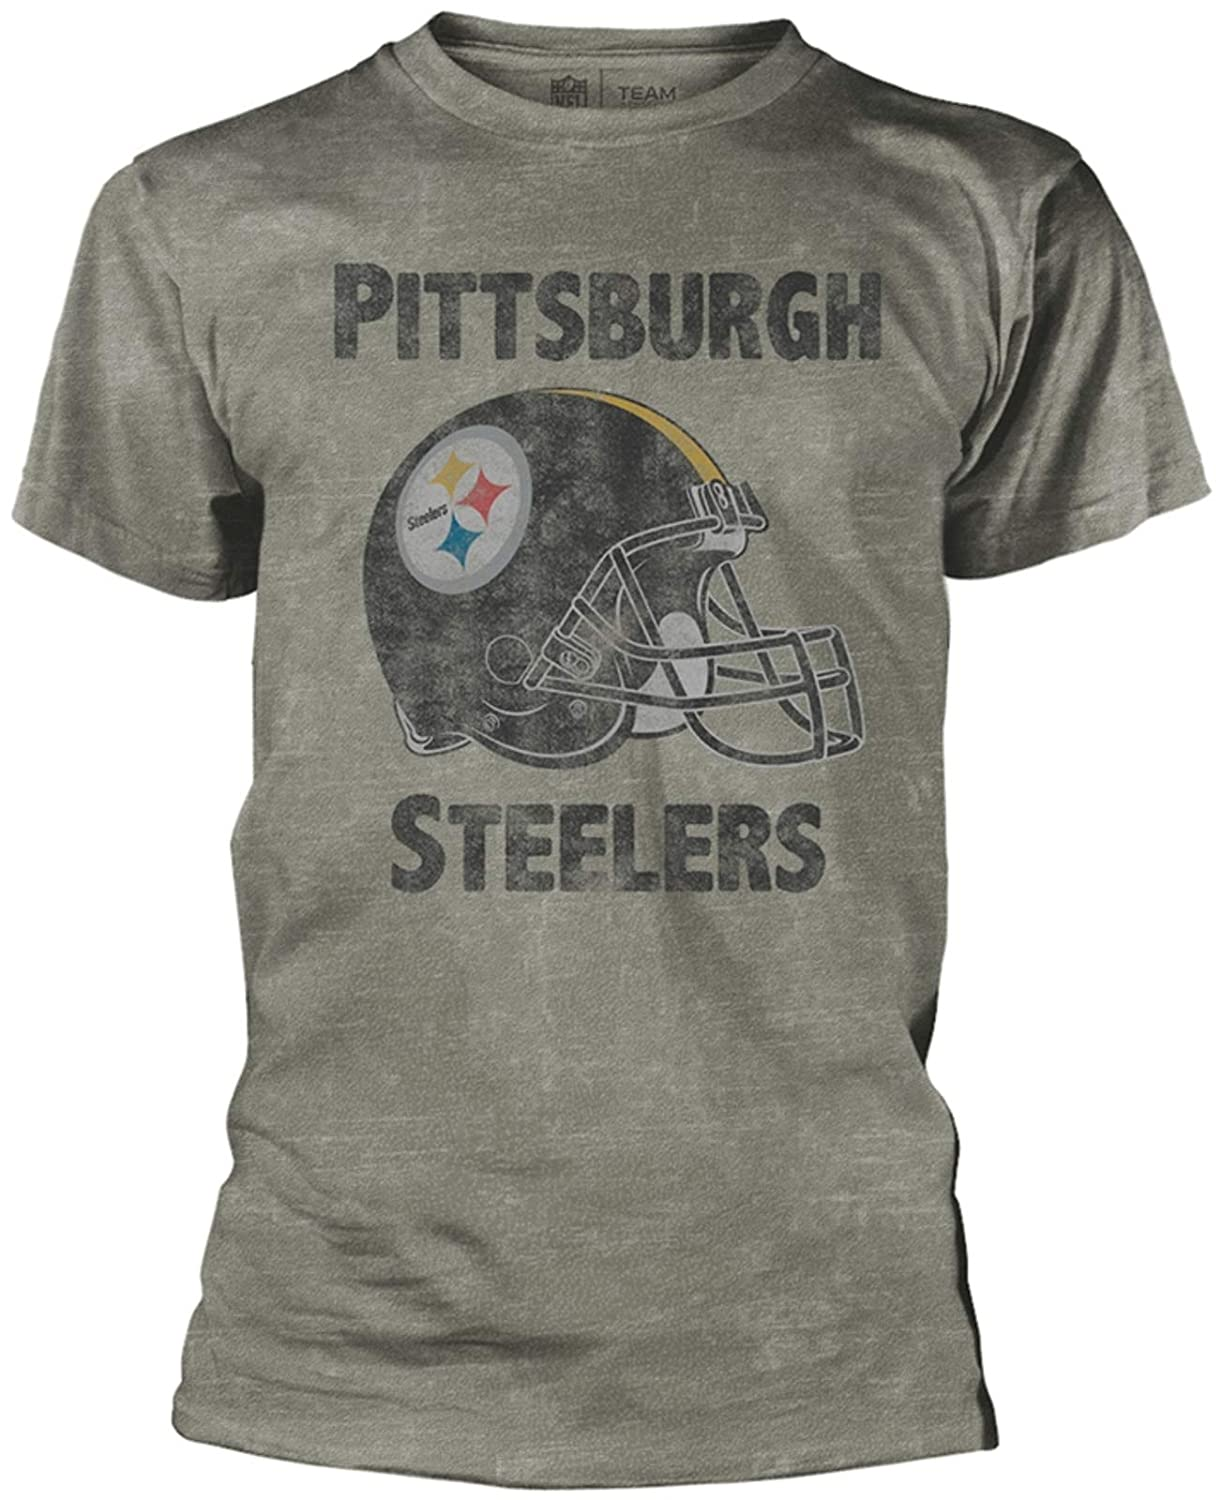 NFL - Pittsburgh Steelers Burnout T-Shirt Official Merchandise